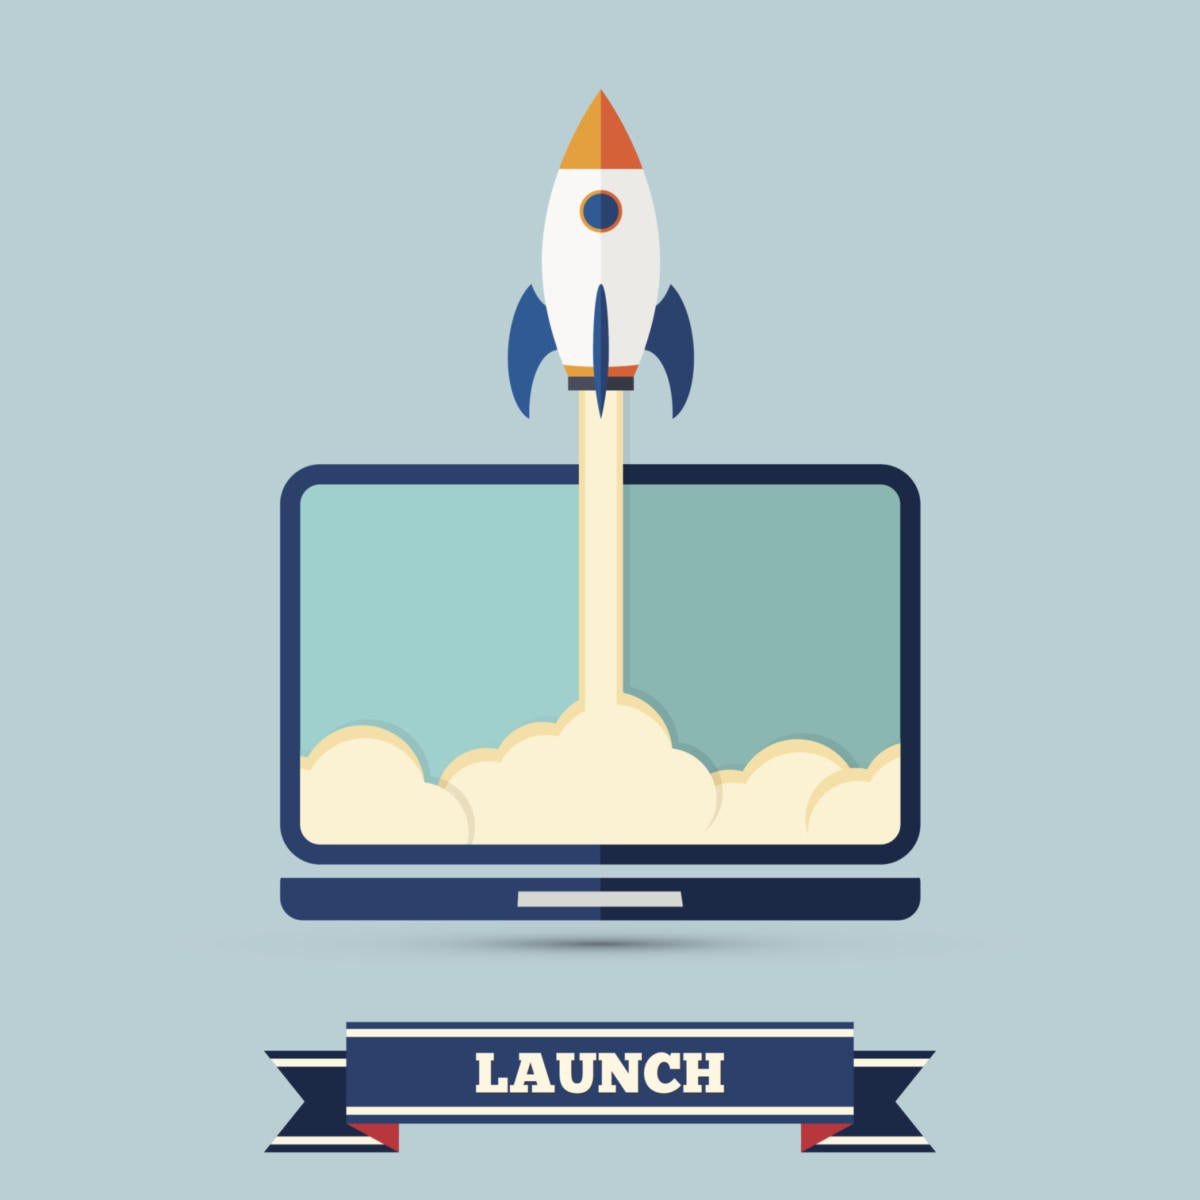 launch launches microsoft sip right microsite thinkstock mdbc